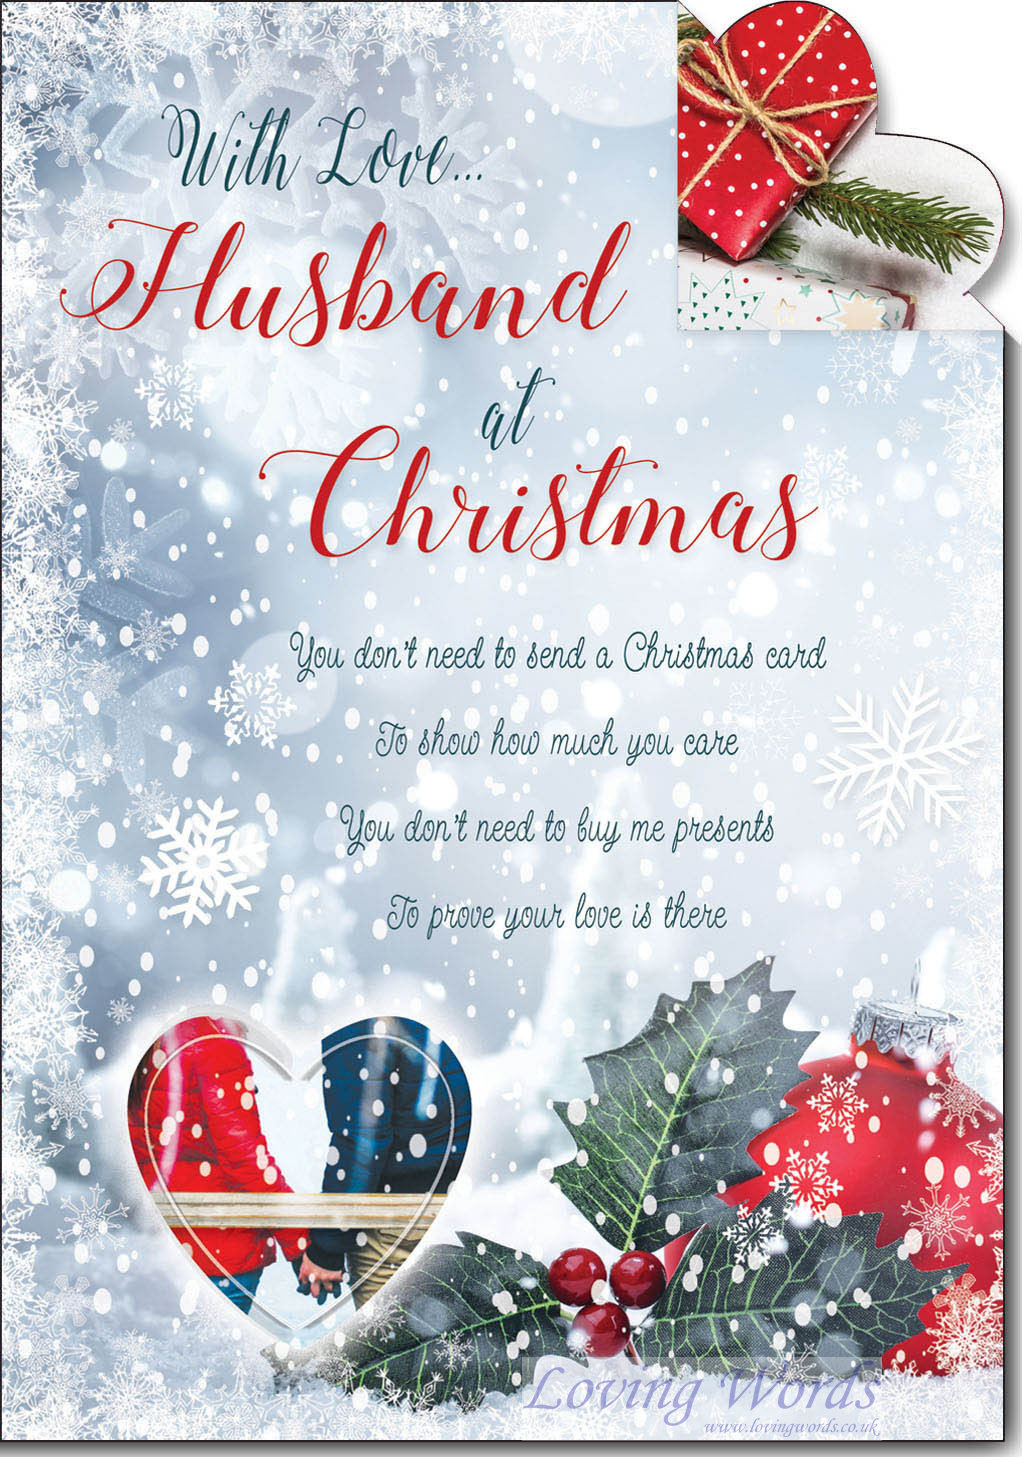 Husband Christmas Cards Uk.Love Husband At Christmas Greeting Cards By Loving Words